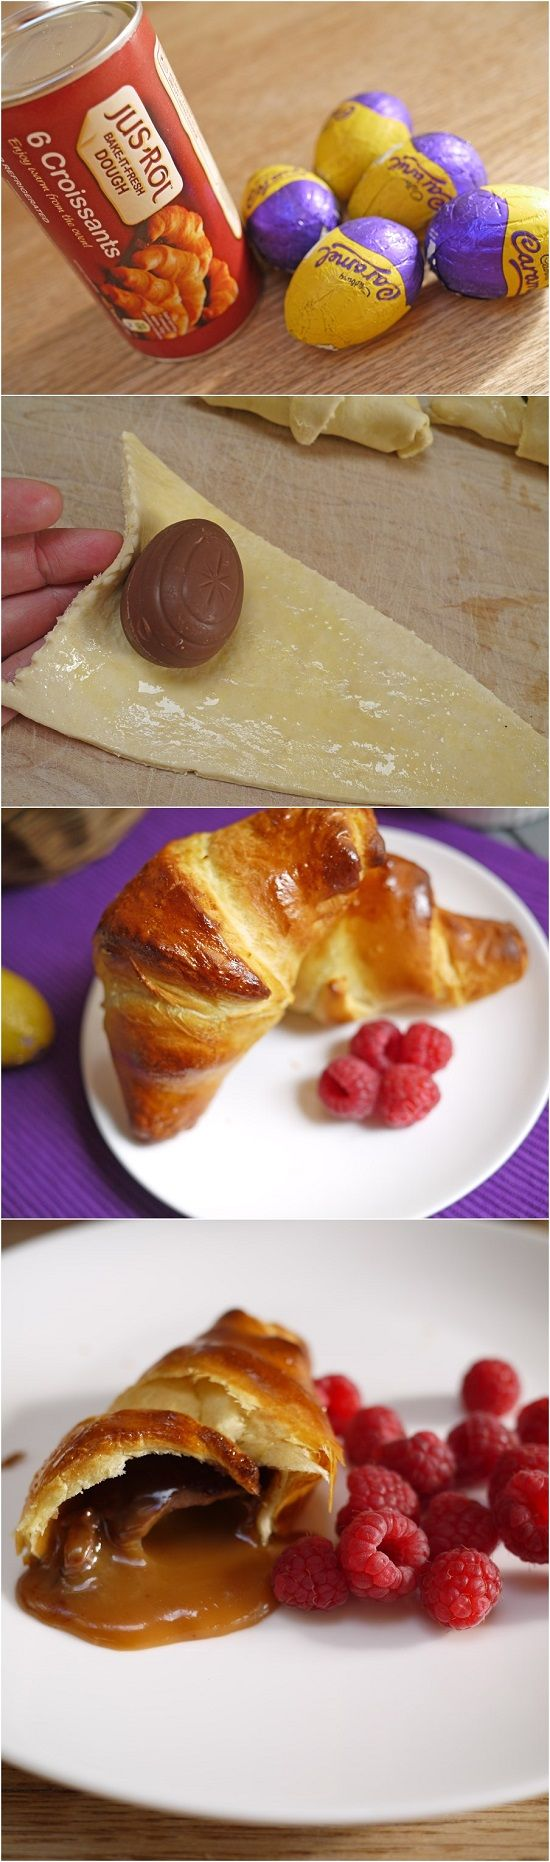 Caramel Cadbury Easter Egg Croissants!!  Freakin' Delicious and Unbelievably Easy!!